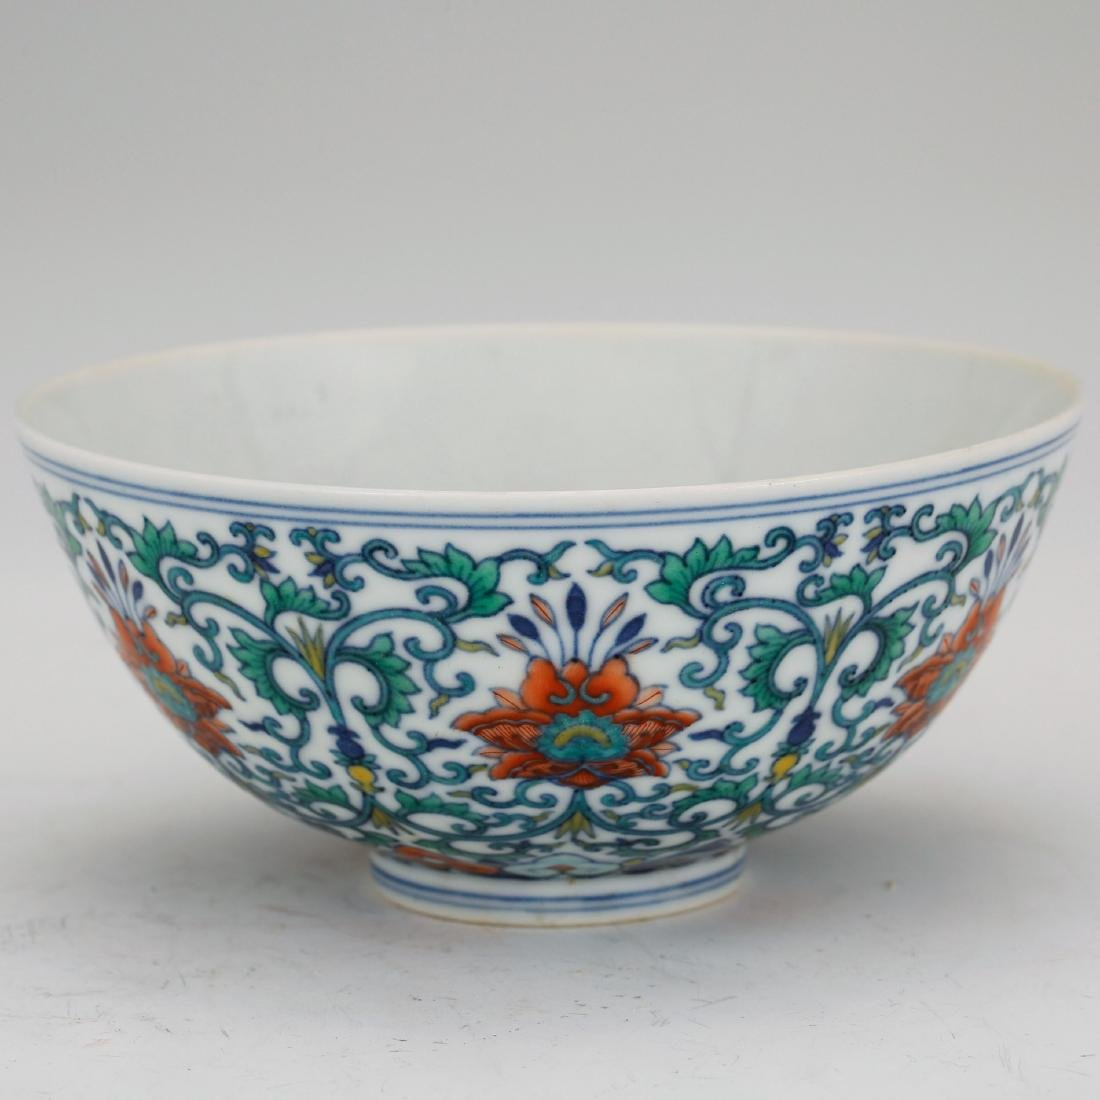 CHINESE QING DYNASTY DOUCAI PORCELAIN FOLIAGE BOWL